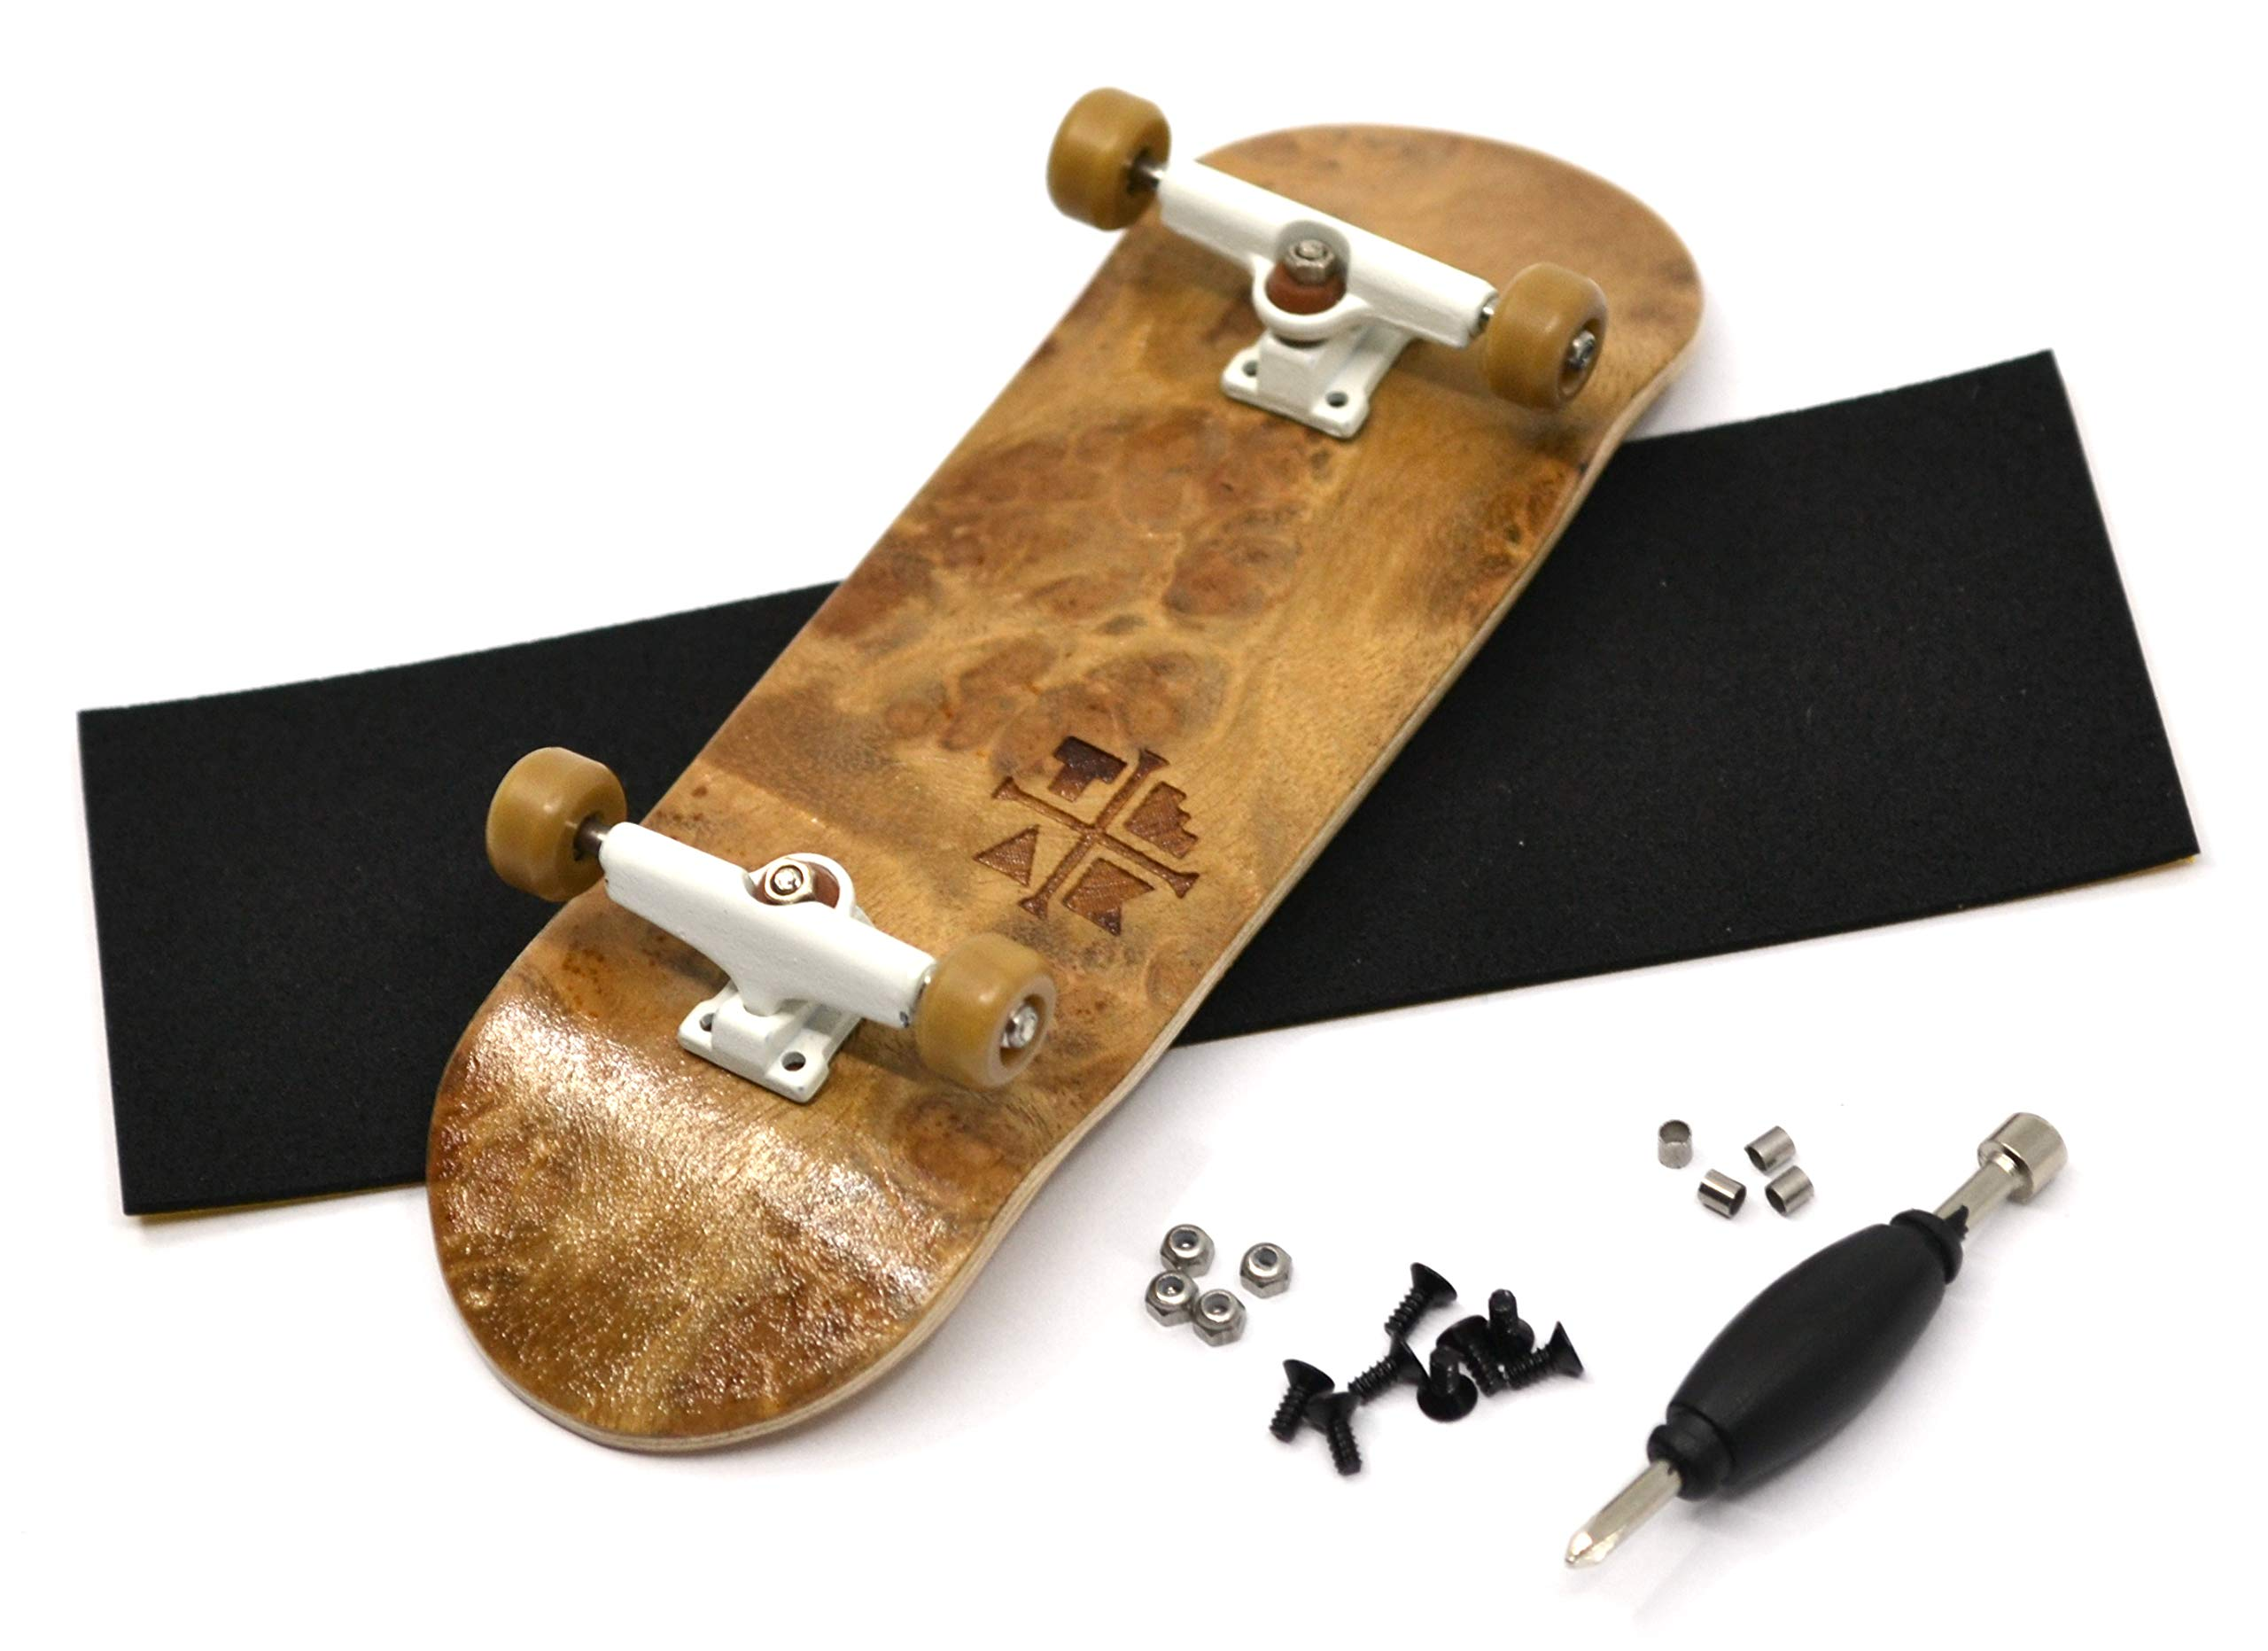 PROlific Complete Fingerboard with Upgraded Components - Pro Board Shape and Size, Bearing Wheels,Trucks, and Locknuts - 32mm x 97mm Handmade Wooden Board - Toasted S'Mores Burl Edition by Teak Tuning